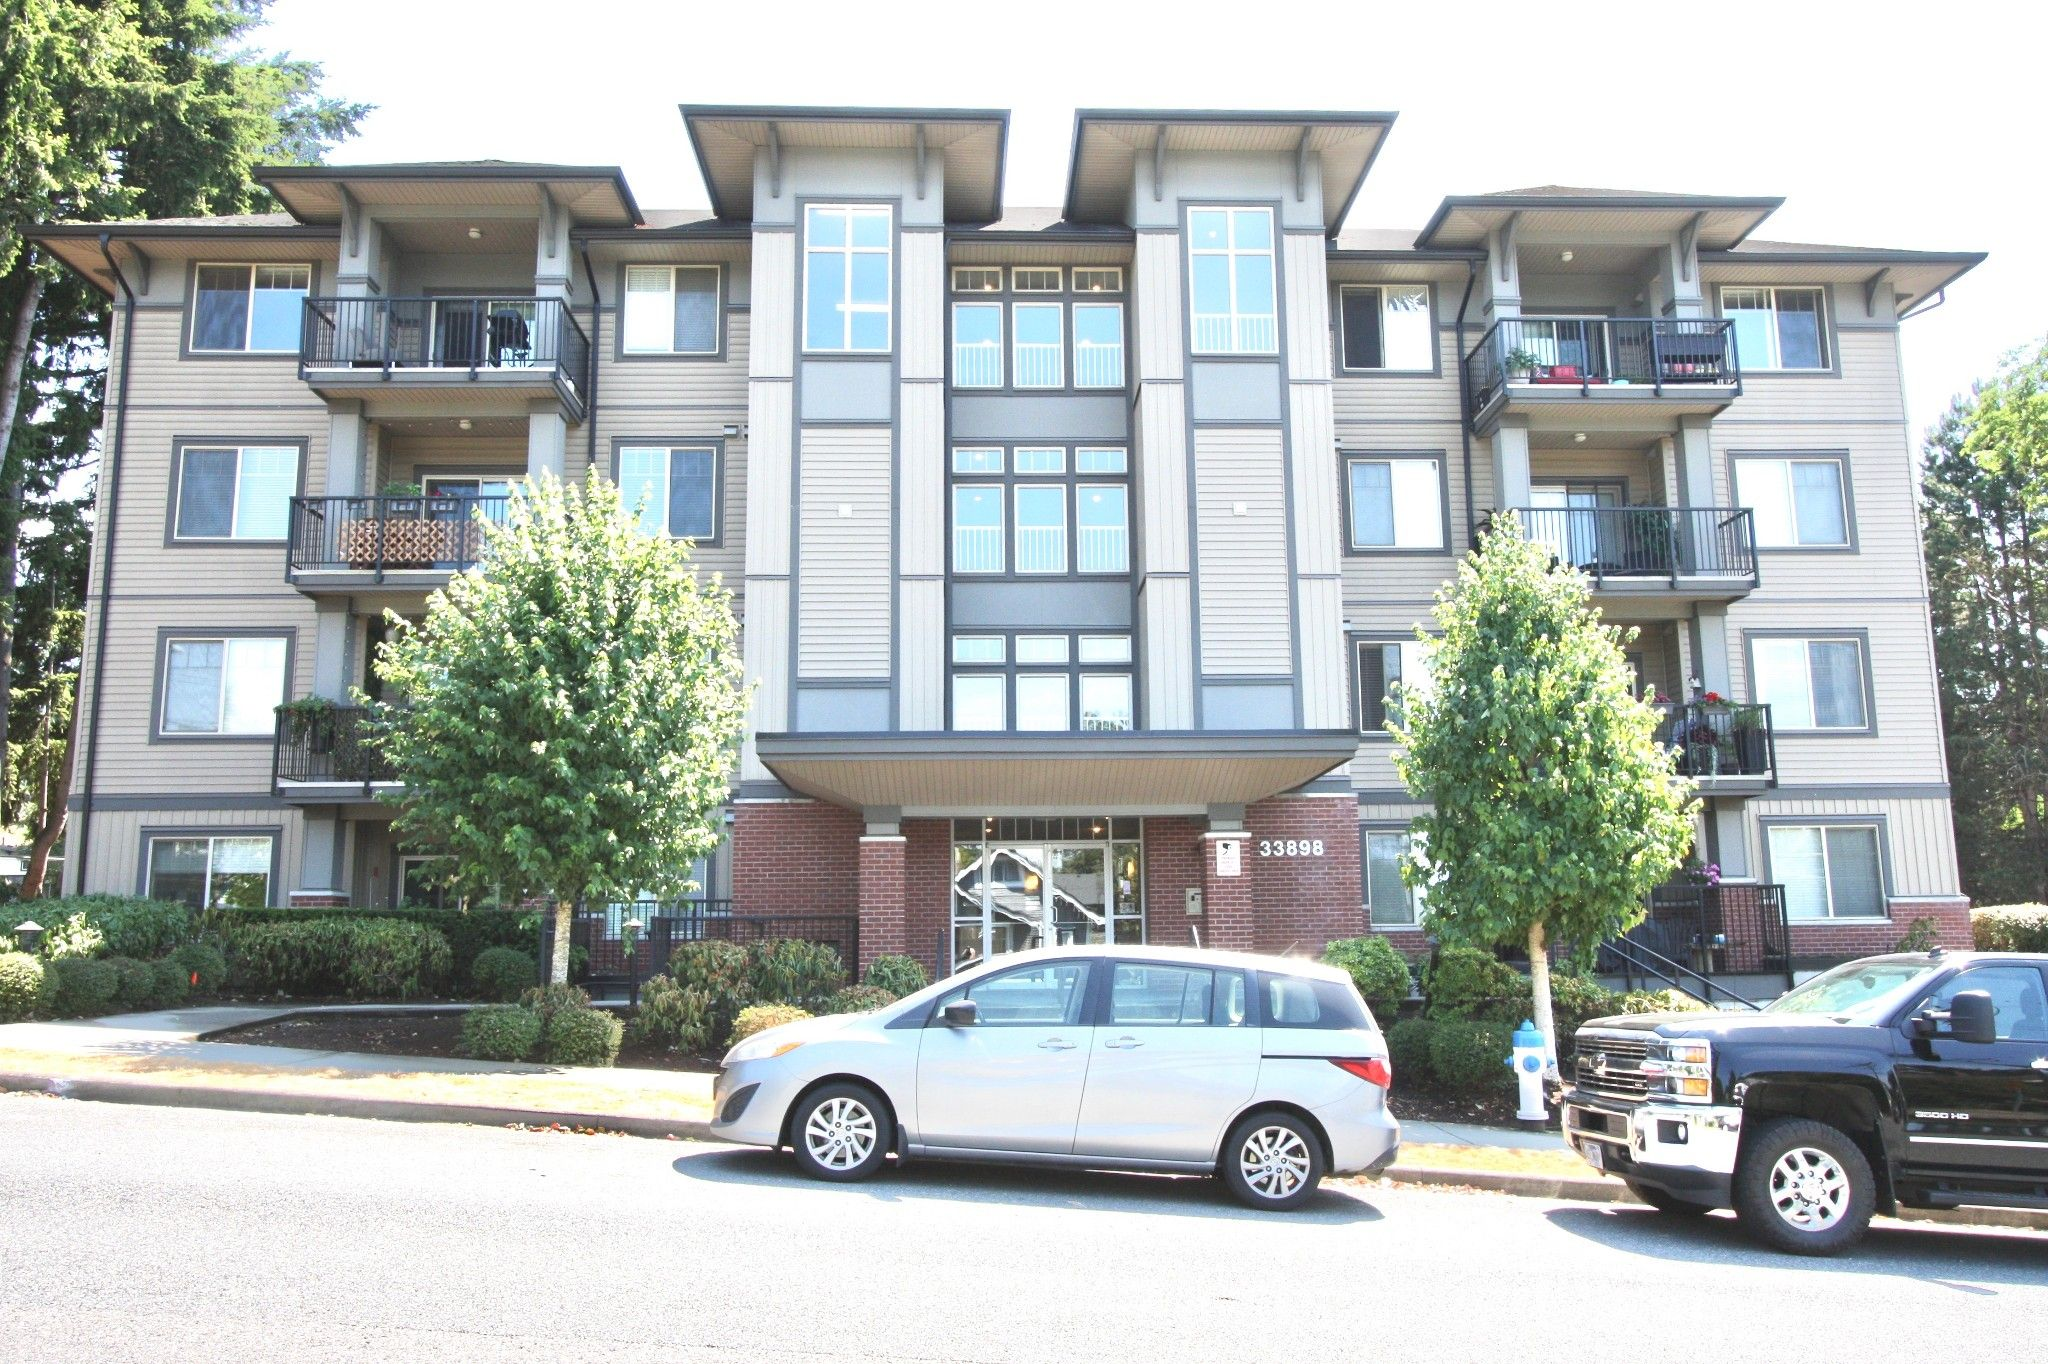 Main Photo: 311 33898 Pine Street in Abbotsford: Central Abbotsford Condo for sale : MLS®# R2601306